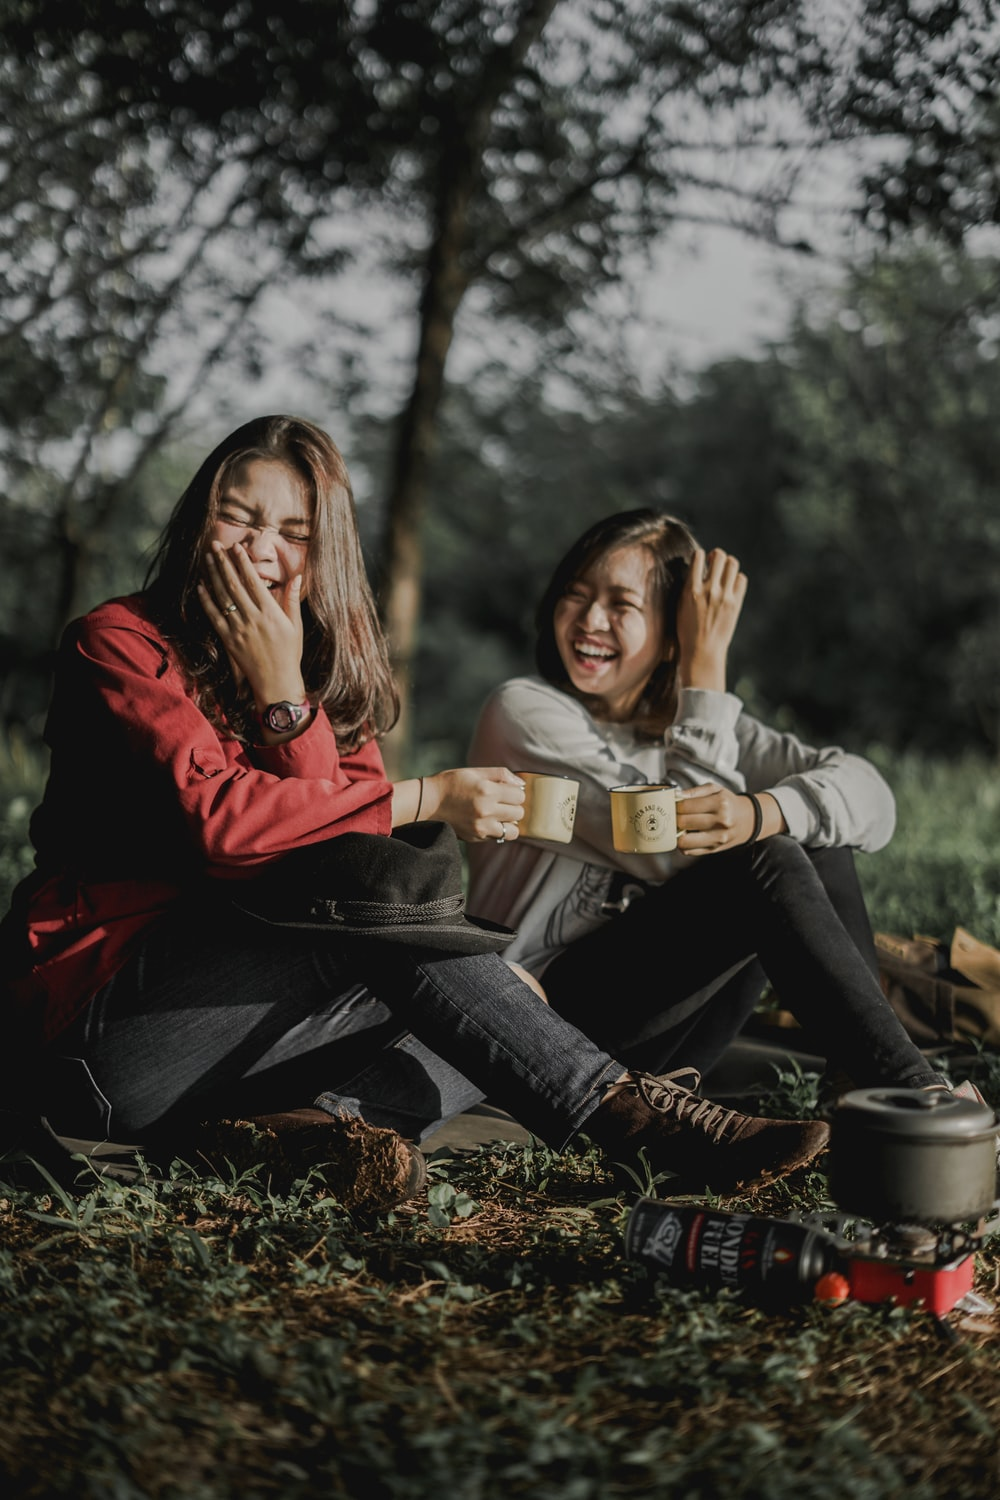 two women holding cups laughing at each other